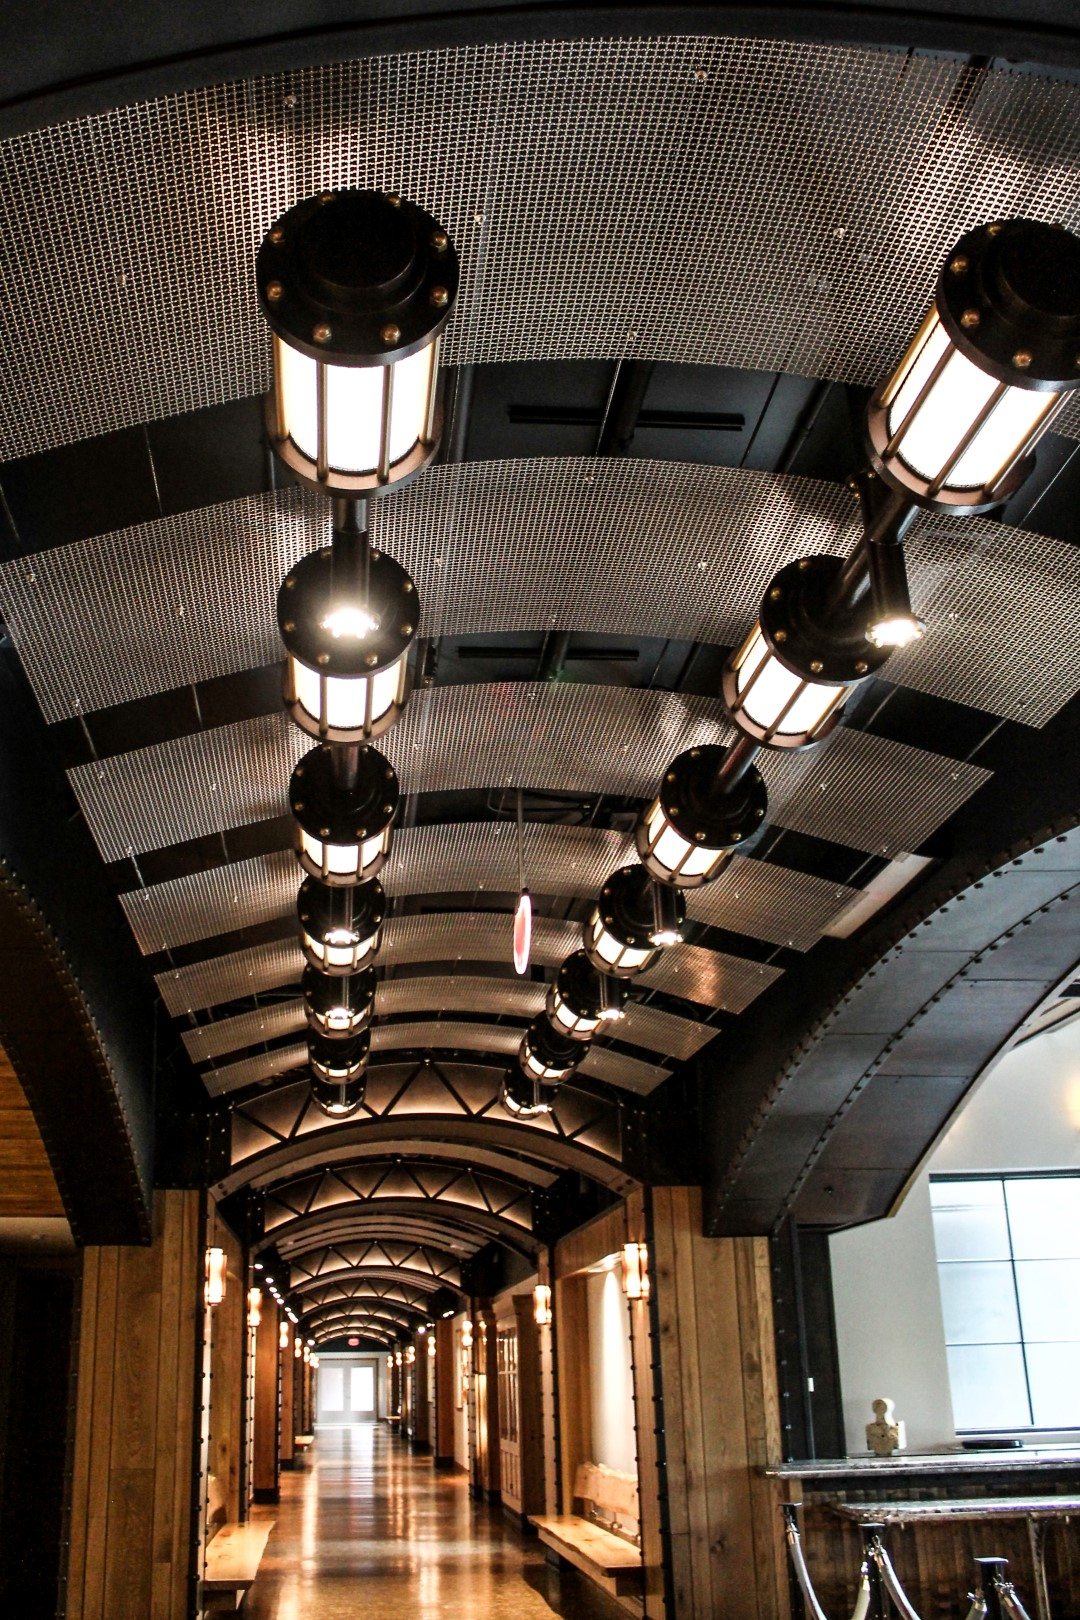 The mid-fill weave of S-9 in T304 stainless steel proved to be the perfect choice for the hallway ceiling panels.